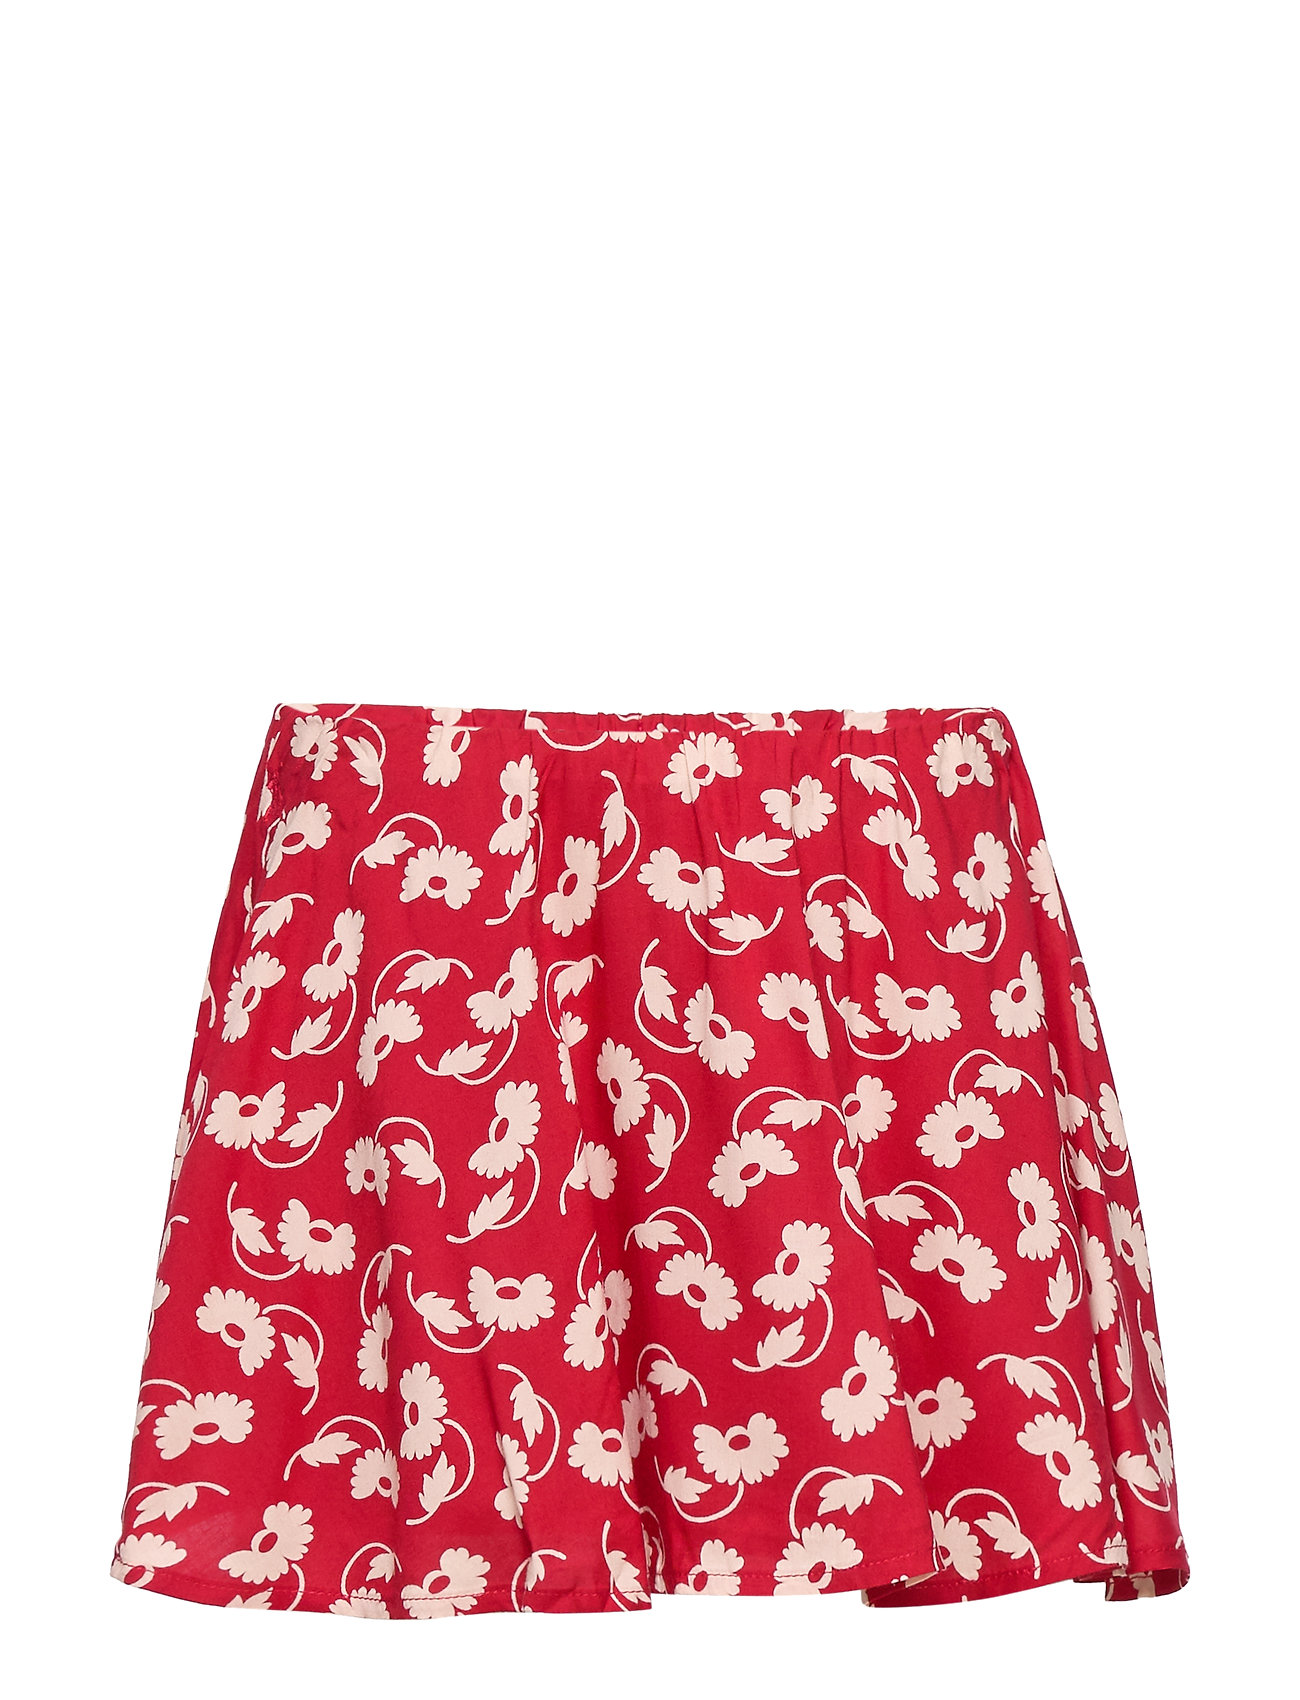 Ralph Lauren Kids Floral Skater Skirt - RED CREAM